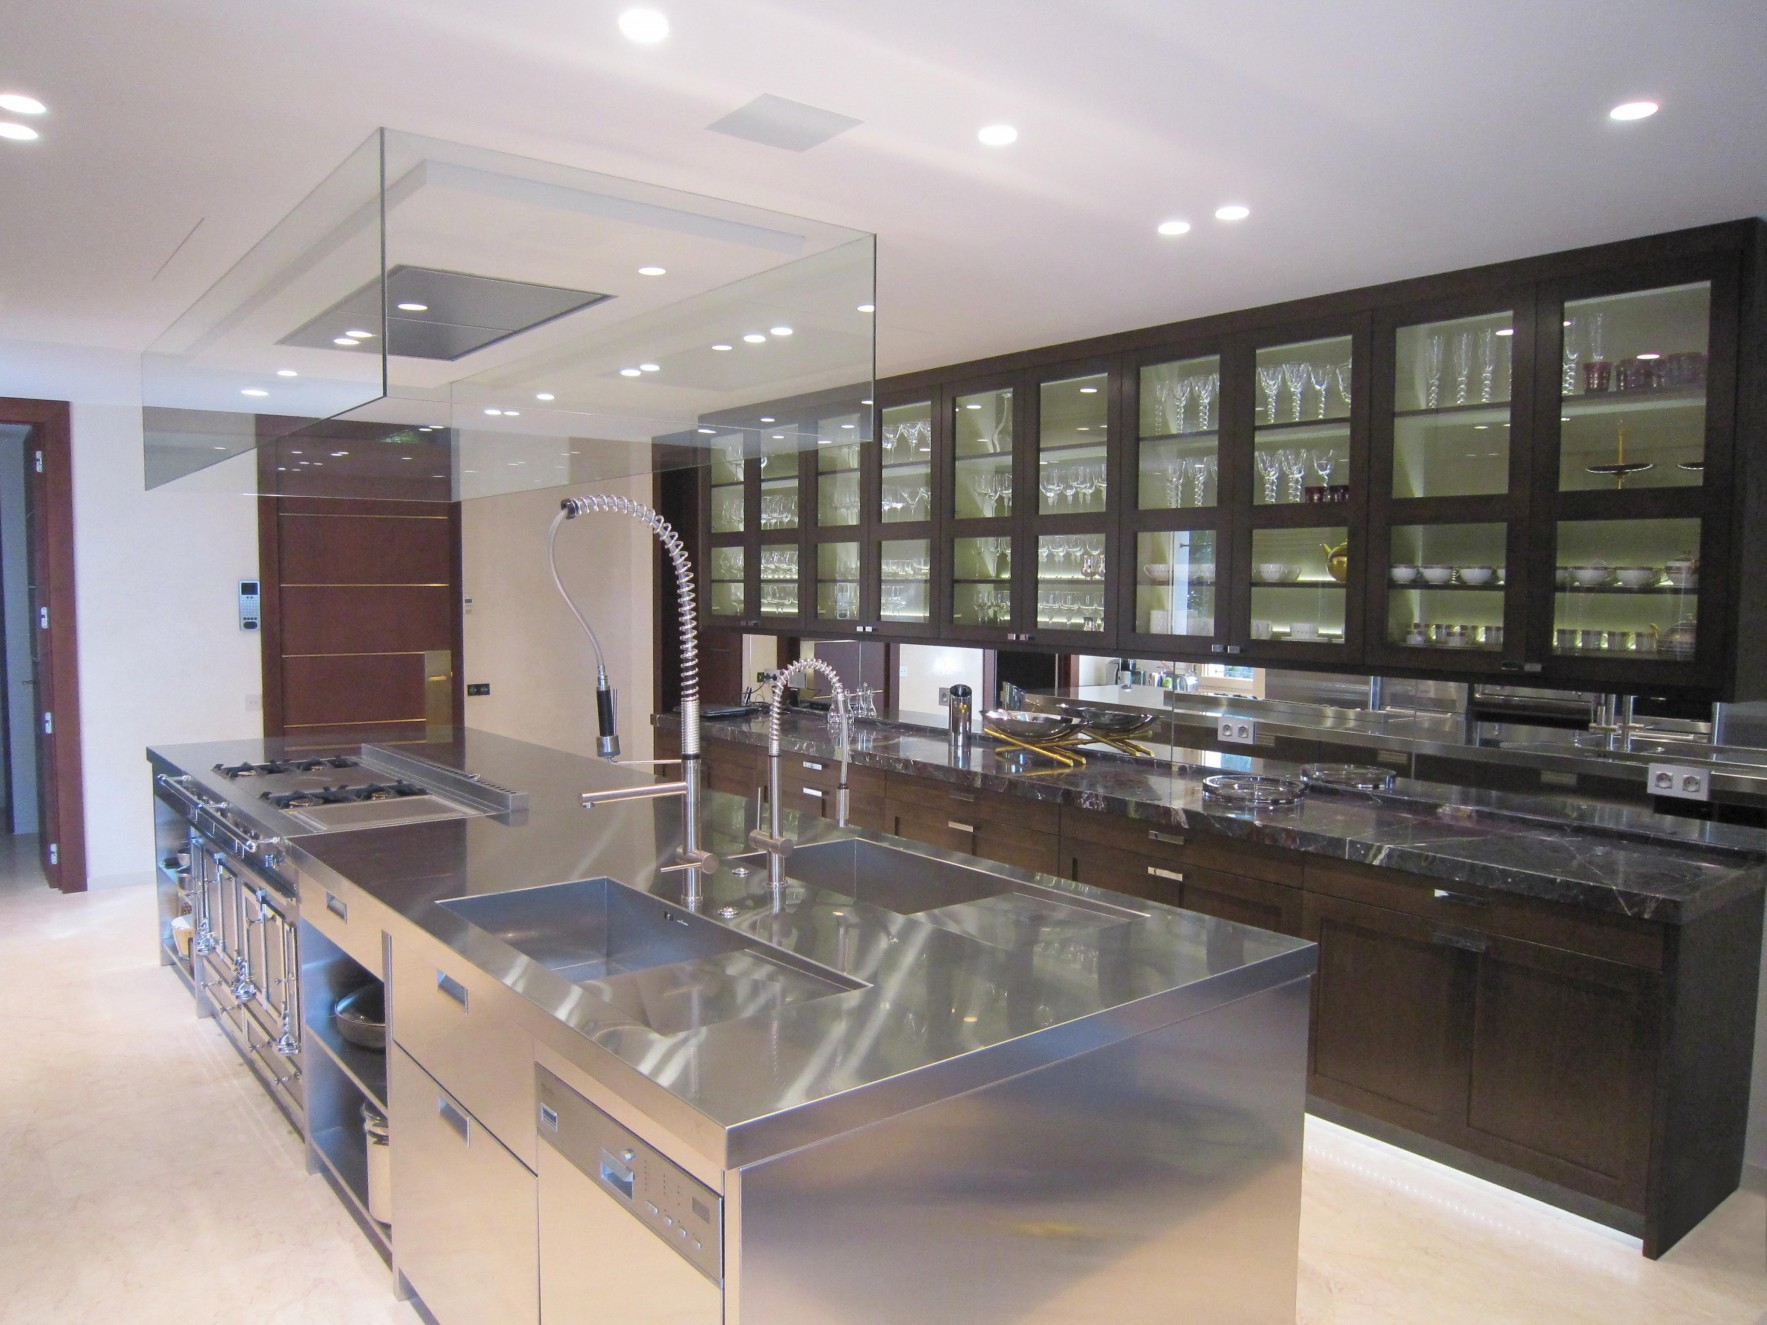 Chef's kitchens equipped with the latest technology